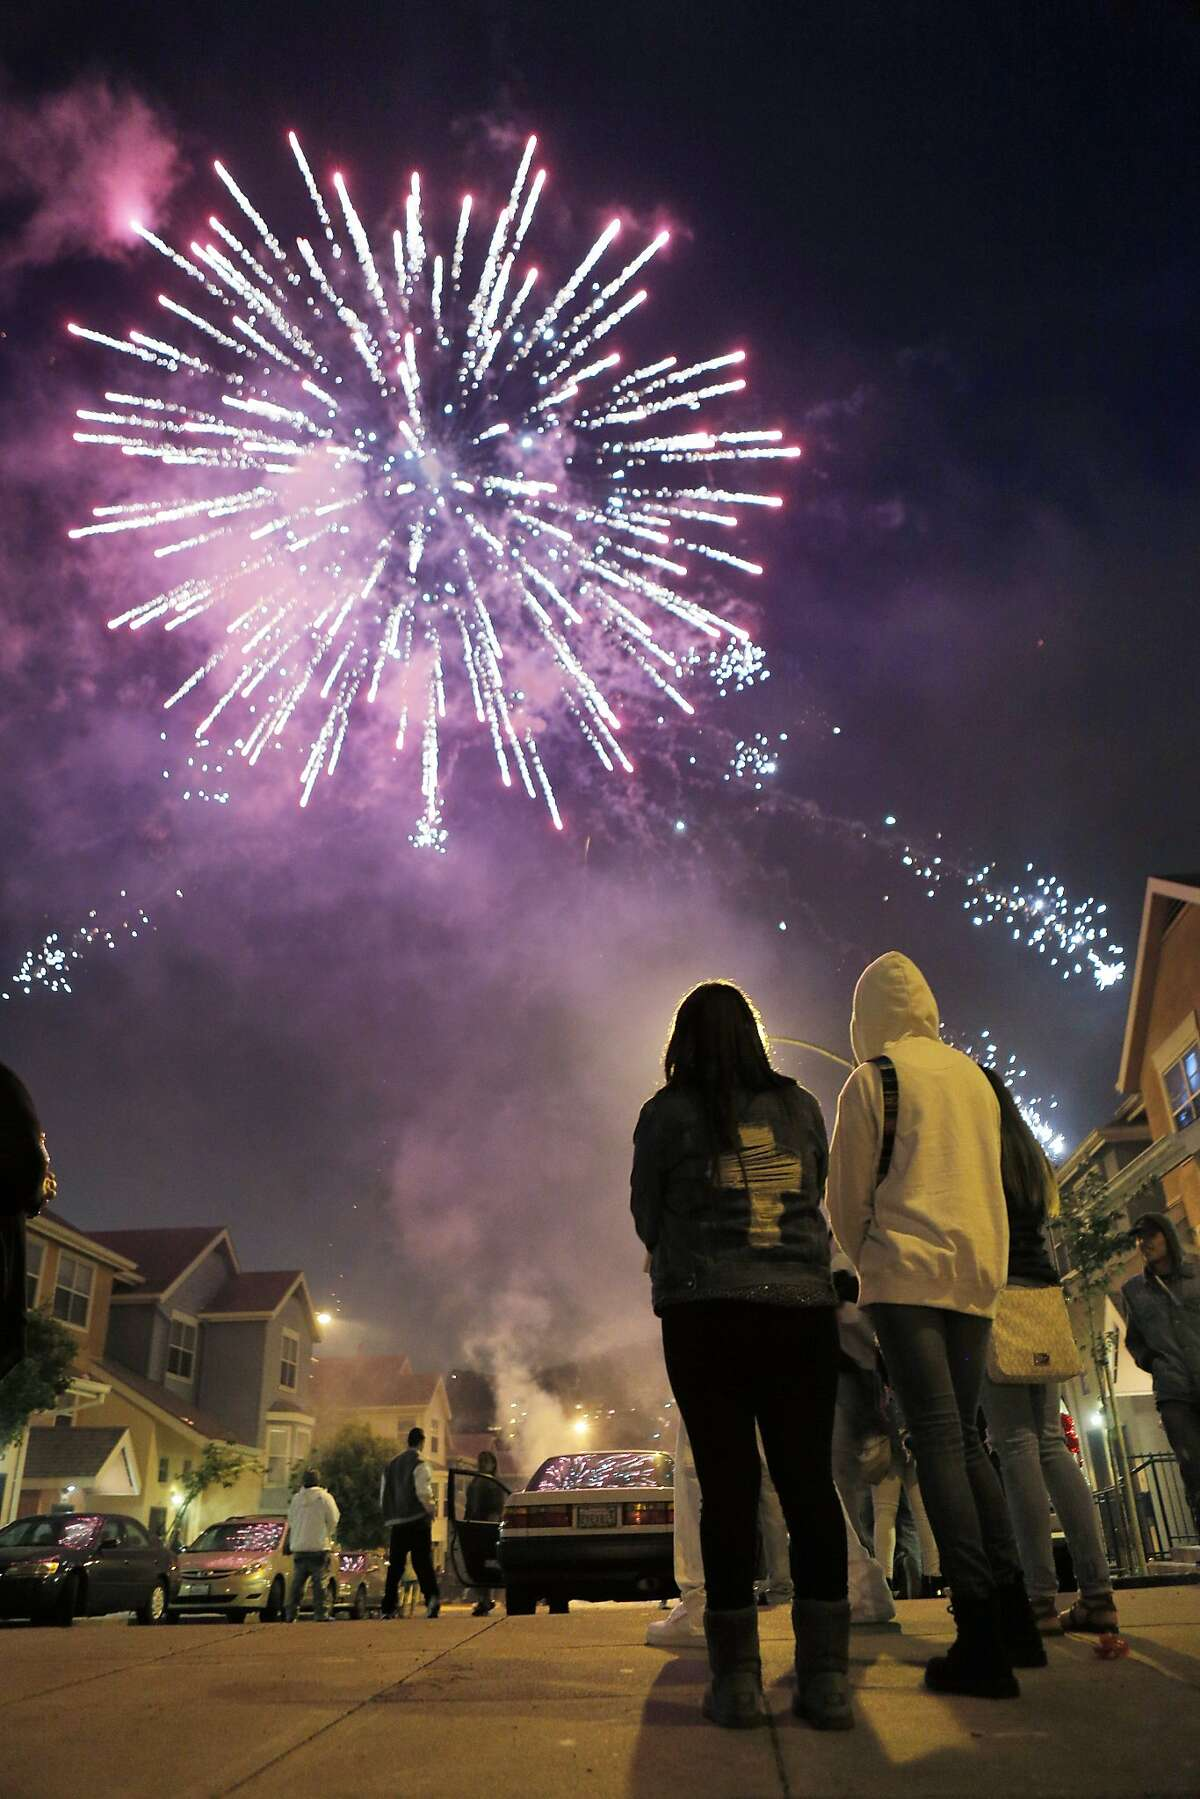 San Francisco residents in the Mission District watched fireworks of their own as the Fourth of July holiday came to a close on Friday night, July 4, 2014.